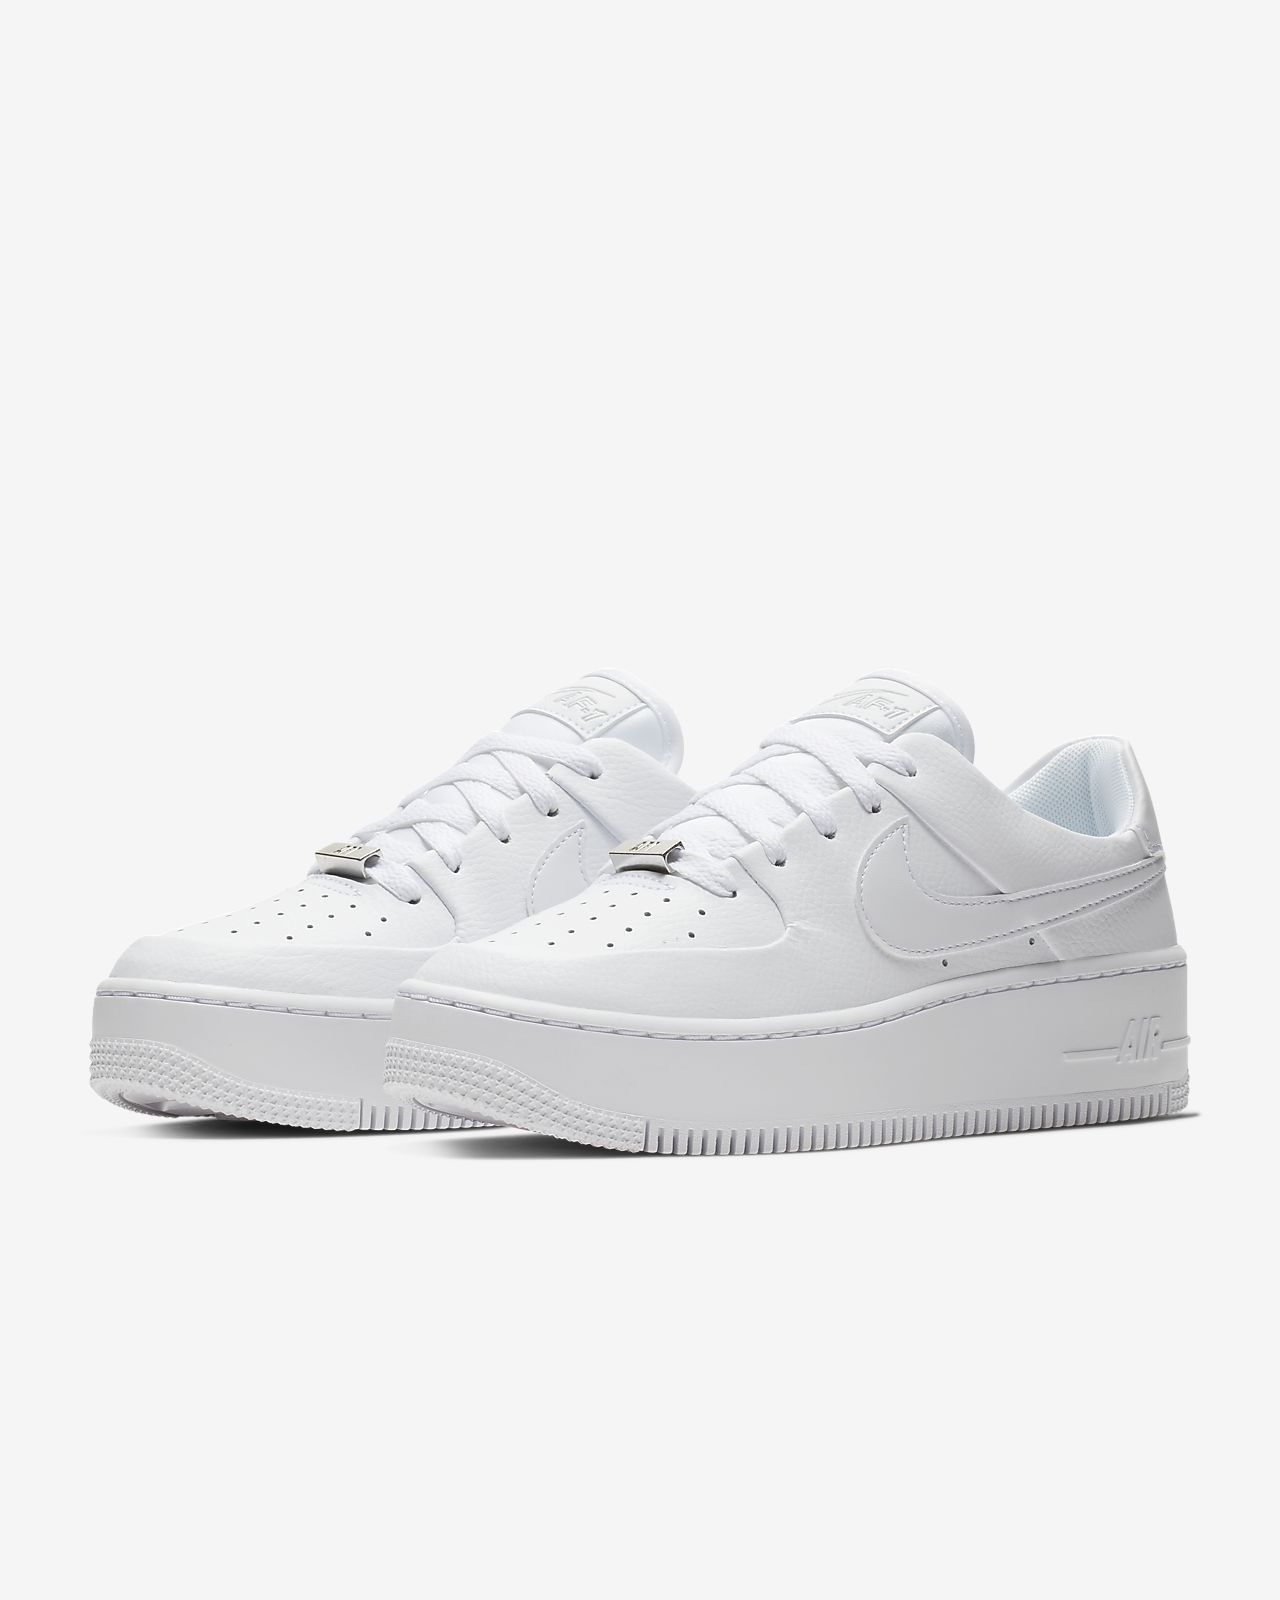 buy popular fda84 e7ef4 Chaussure Nike Air Force 1 Sage Low pour Femme